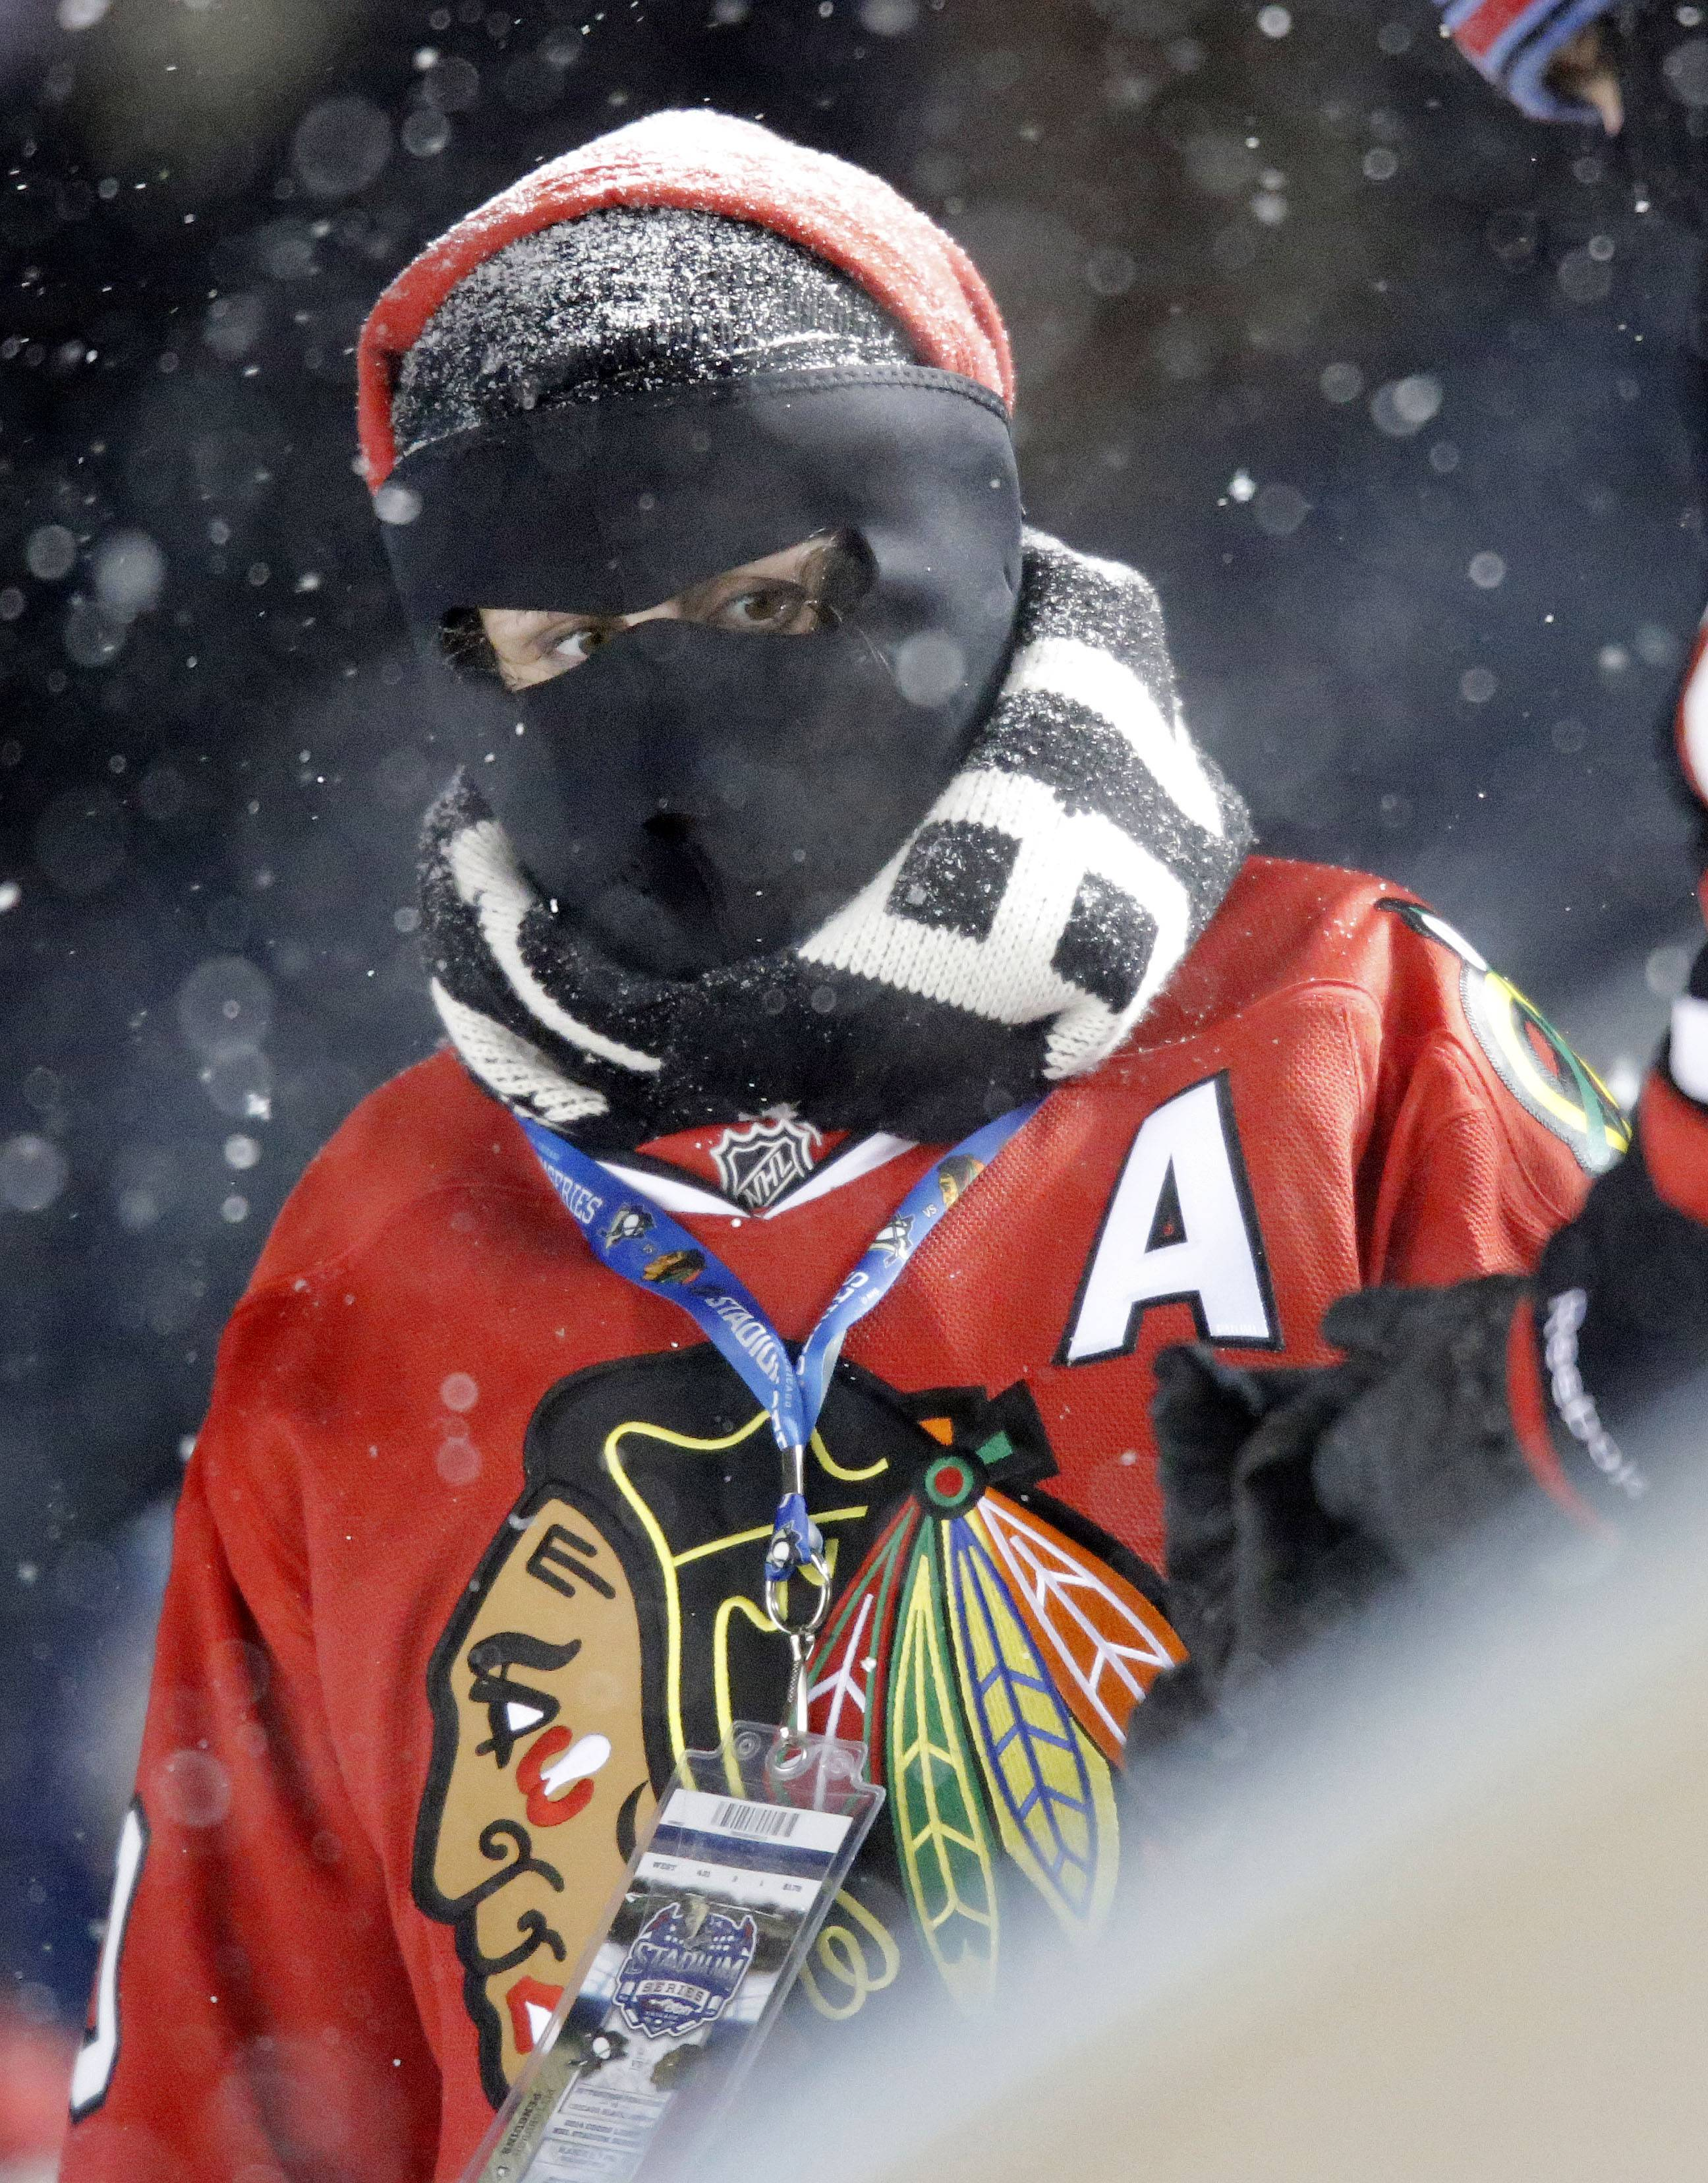 Fans cover from the bitter cold during the NHL Stadium Series between the Blackhawks and the Penguins Saturday at Soldier Field.